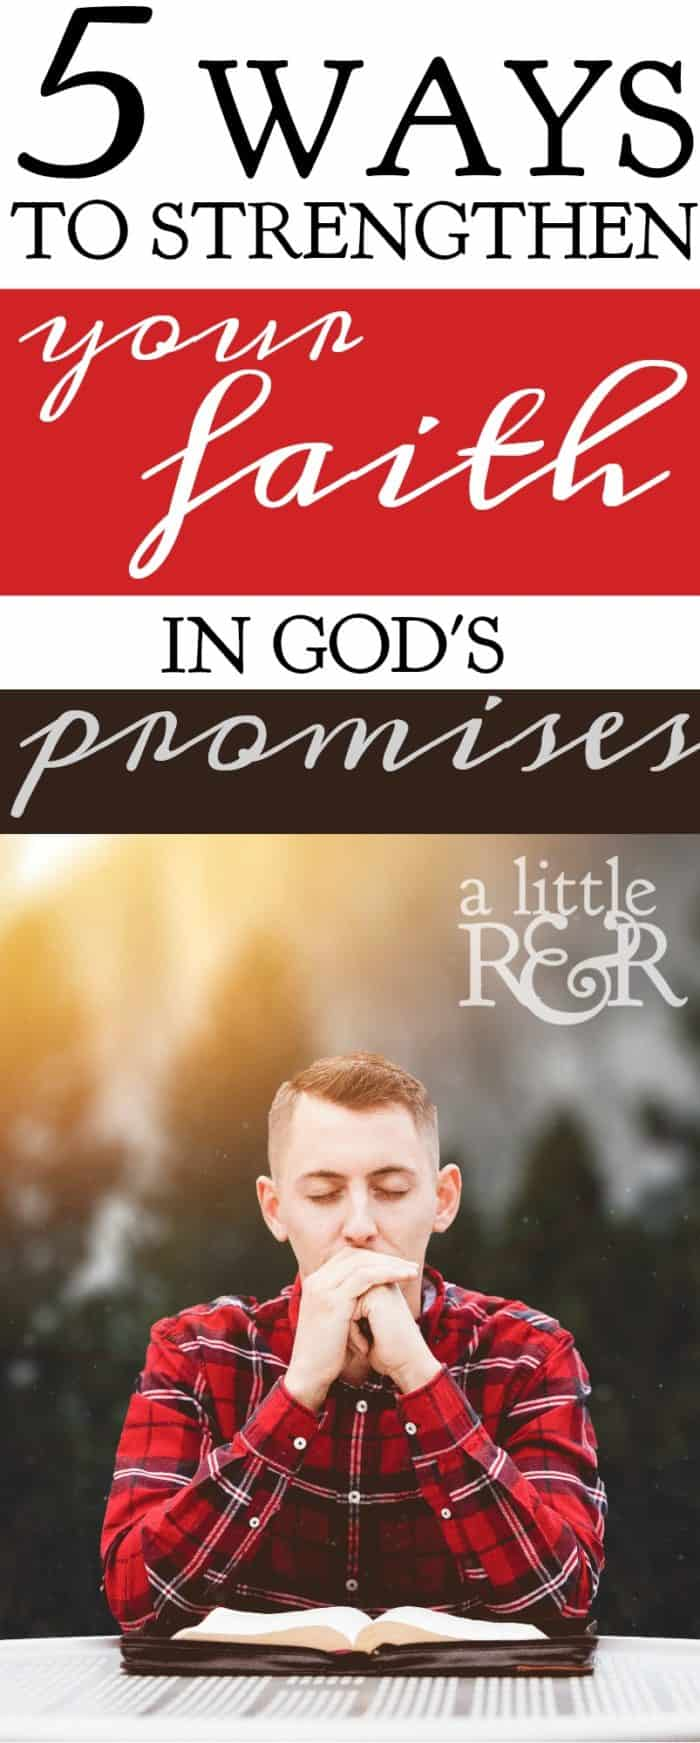 God rarely fulfills His promises to us right away, and in that span of time between the promise and the fulfillment of that promise we are often tempted to grow discouraged and disillusioned. Here are 5 ways to strengthen your faith while waiting on God's promise.